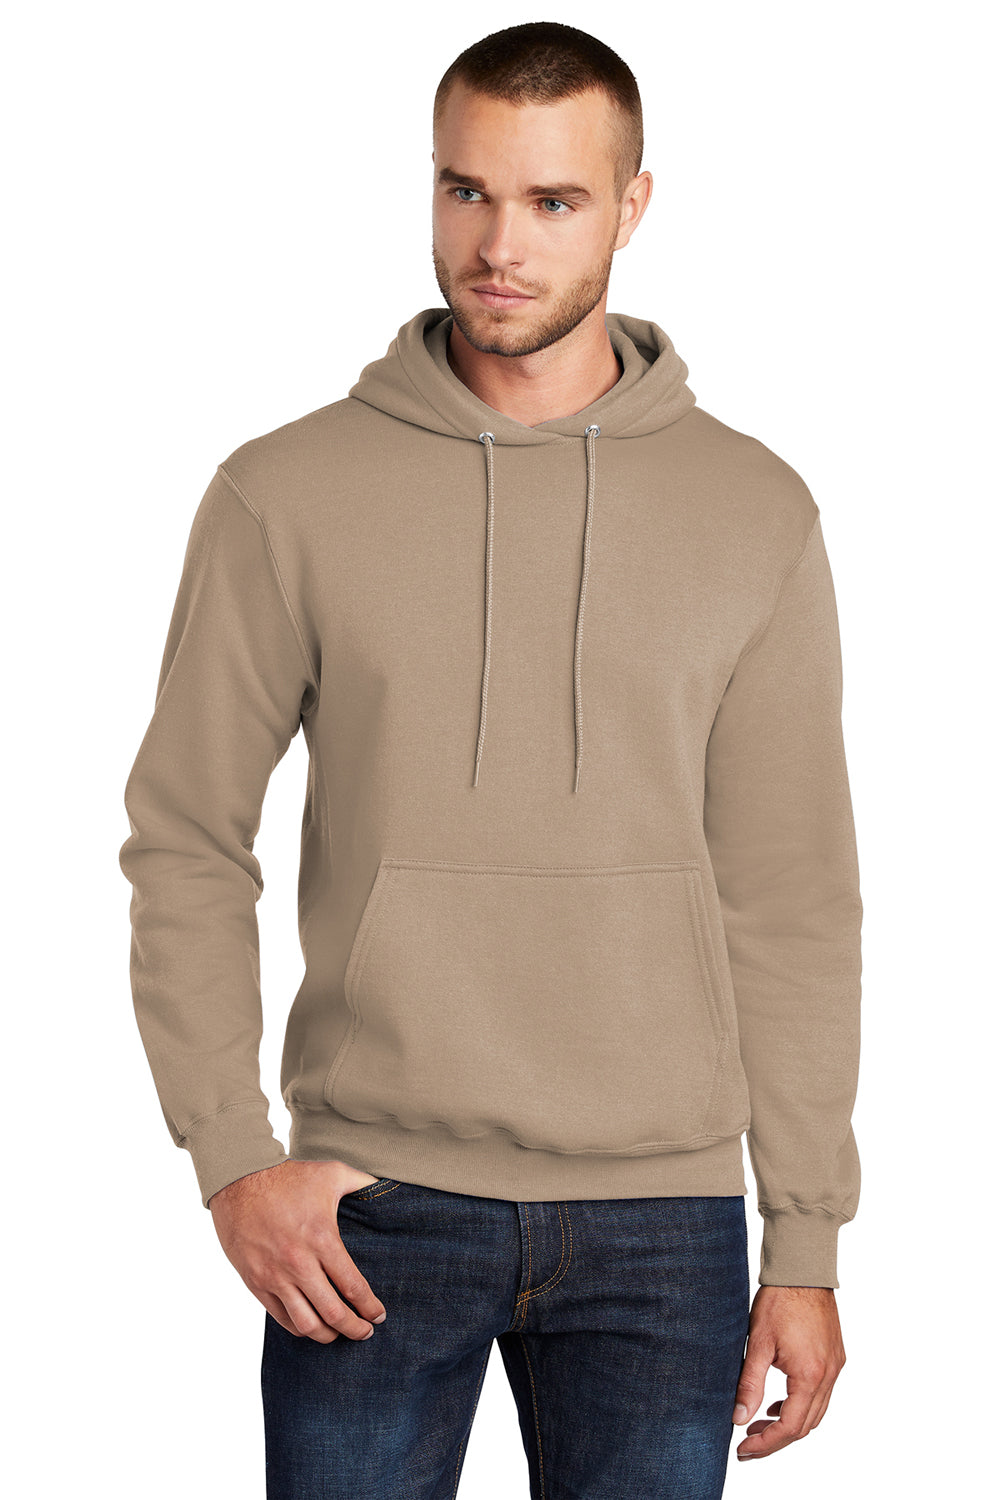 Port & Company PC78H Mens Core Fleece Hooded Sweatshirt Hoodie Sand Brown Front